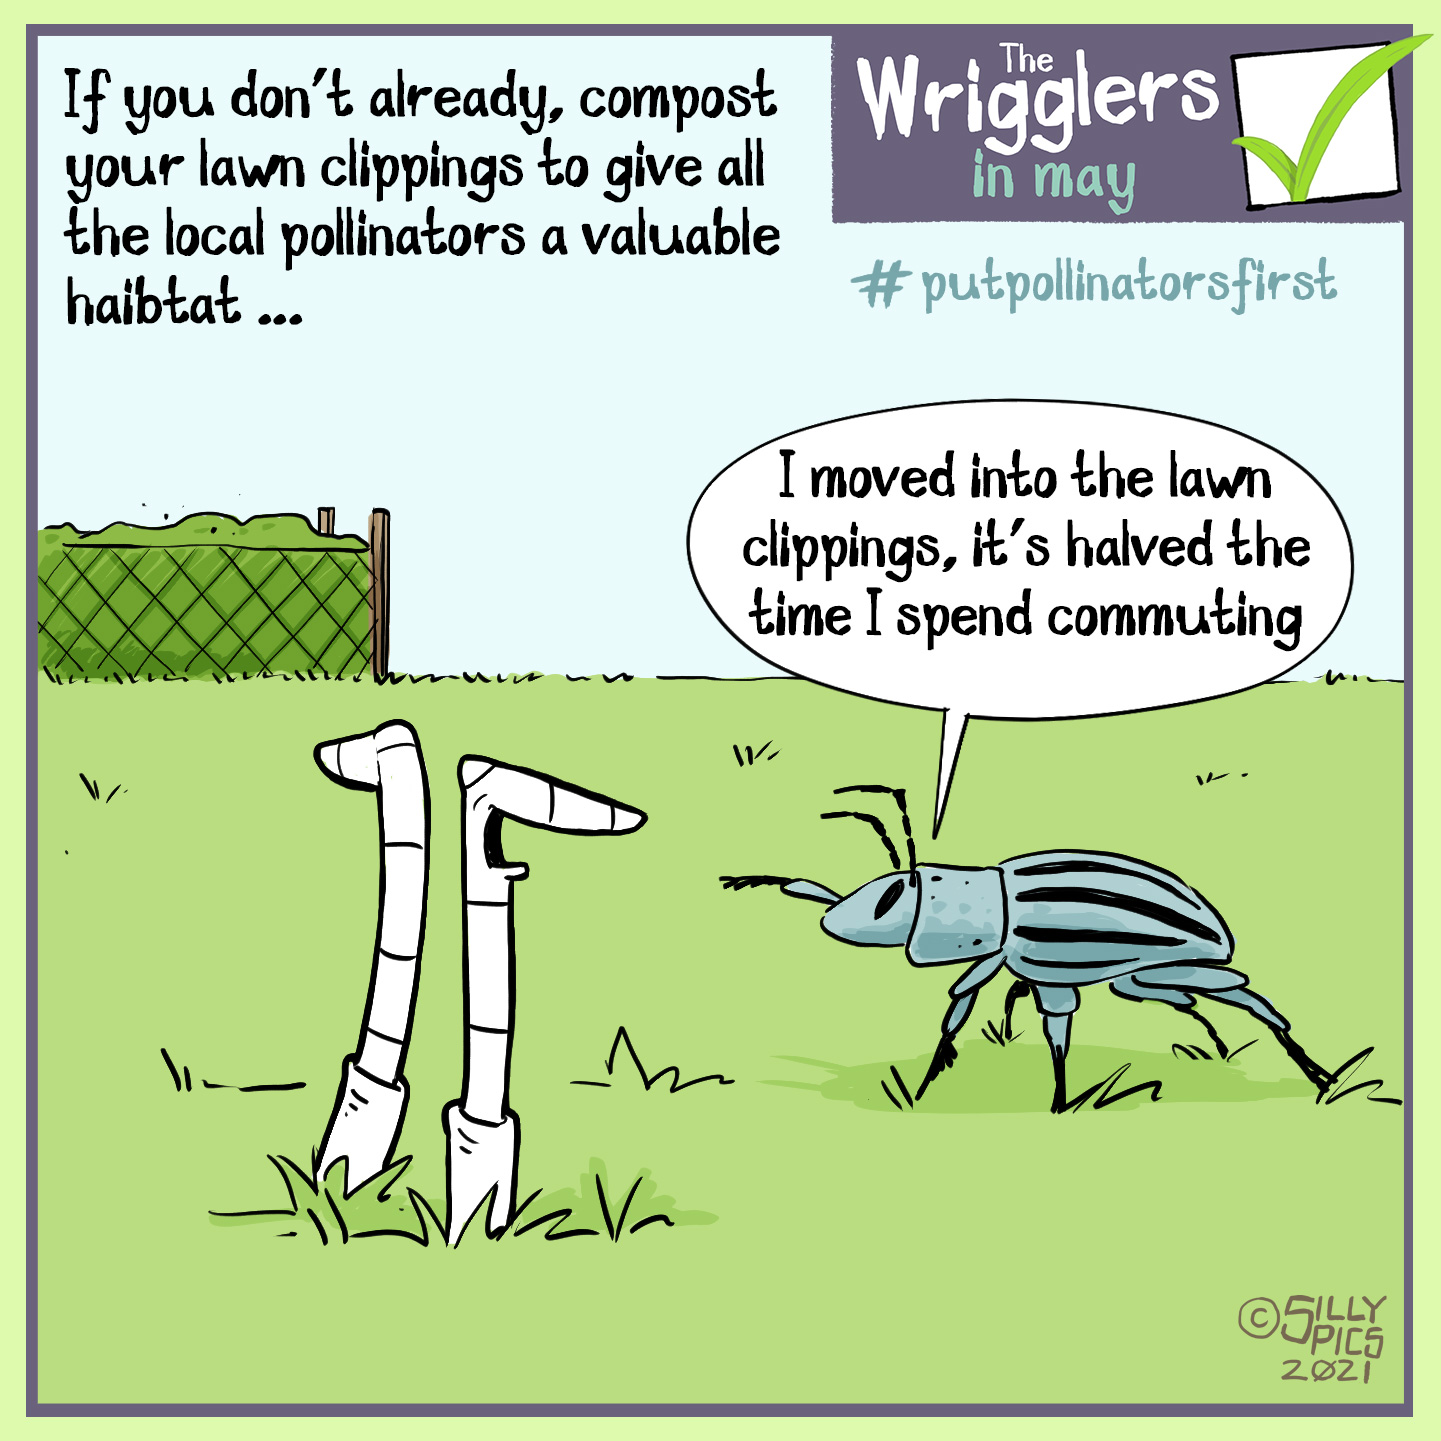 """#putpollinatorsfirst cartoon about mowing your lawn. The cartoon says: If you don't already, compost your lawn clippings to gove the local pollinators a valuable habitat The image is of two worms talking to a pollinating beetle. The Beetle points to a grass clipping compost heap, it says,""""I moved into the lawn clippings, it's halved the time I spend commuting"""""""